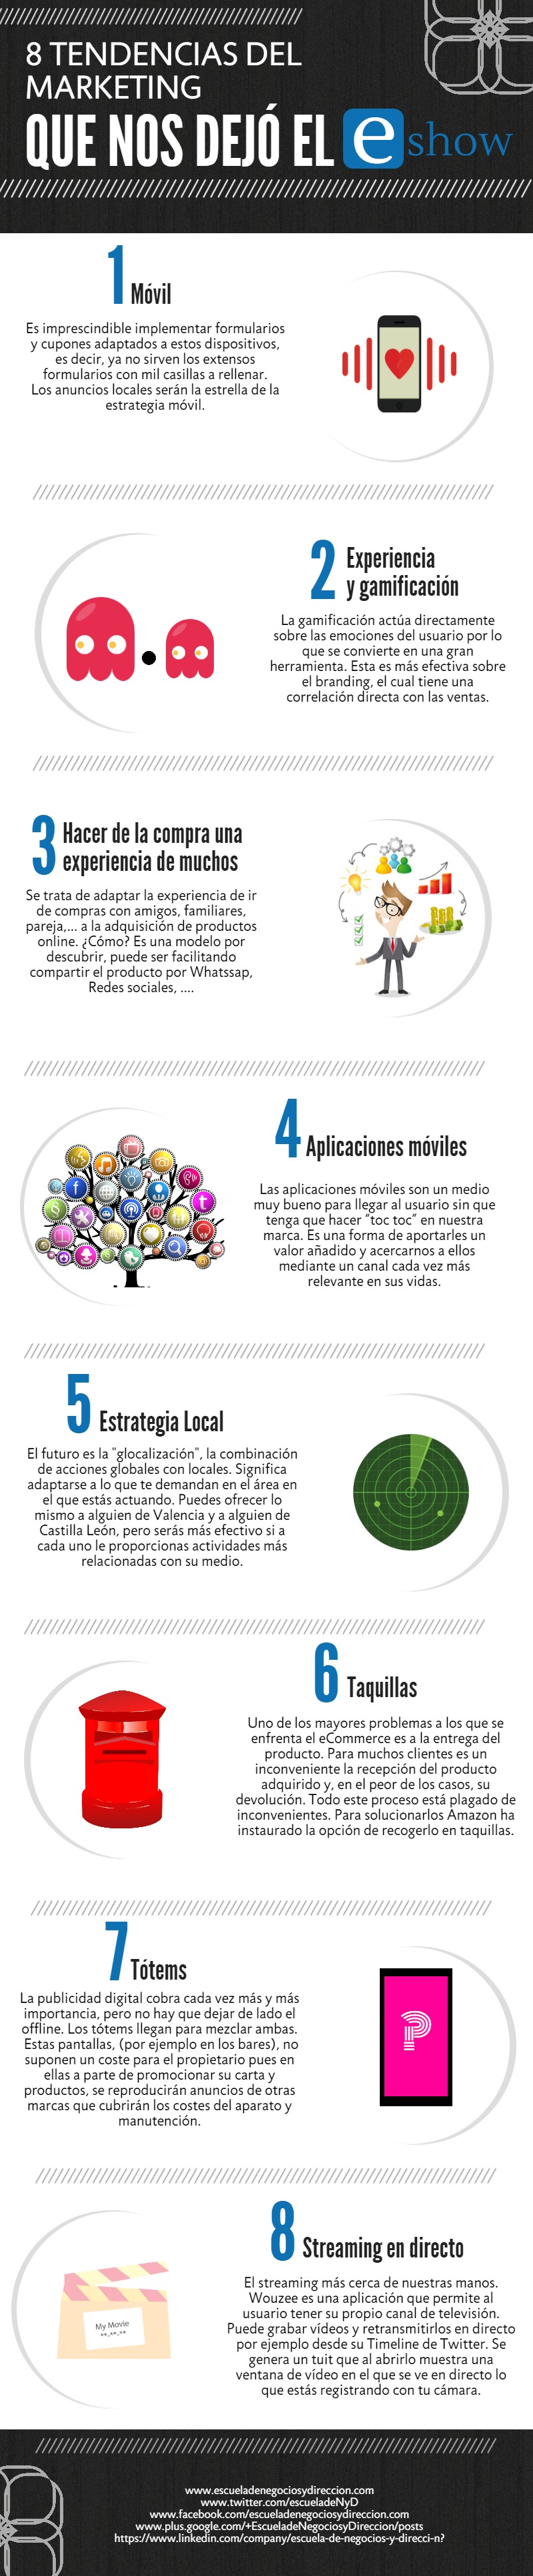 8 tendencias de marketing